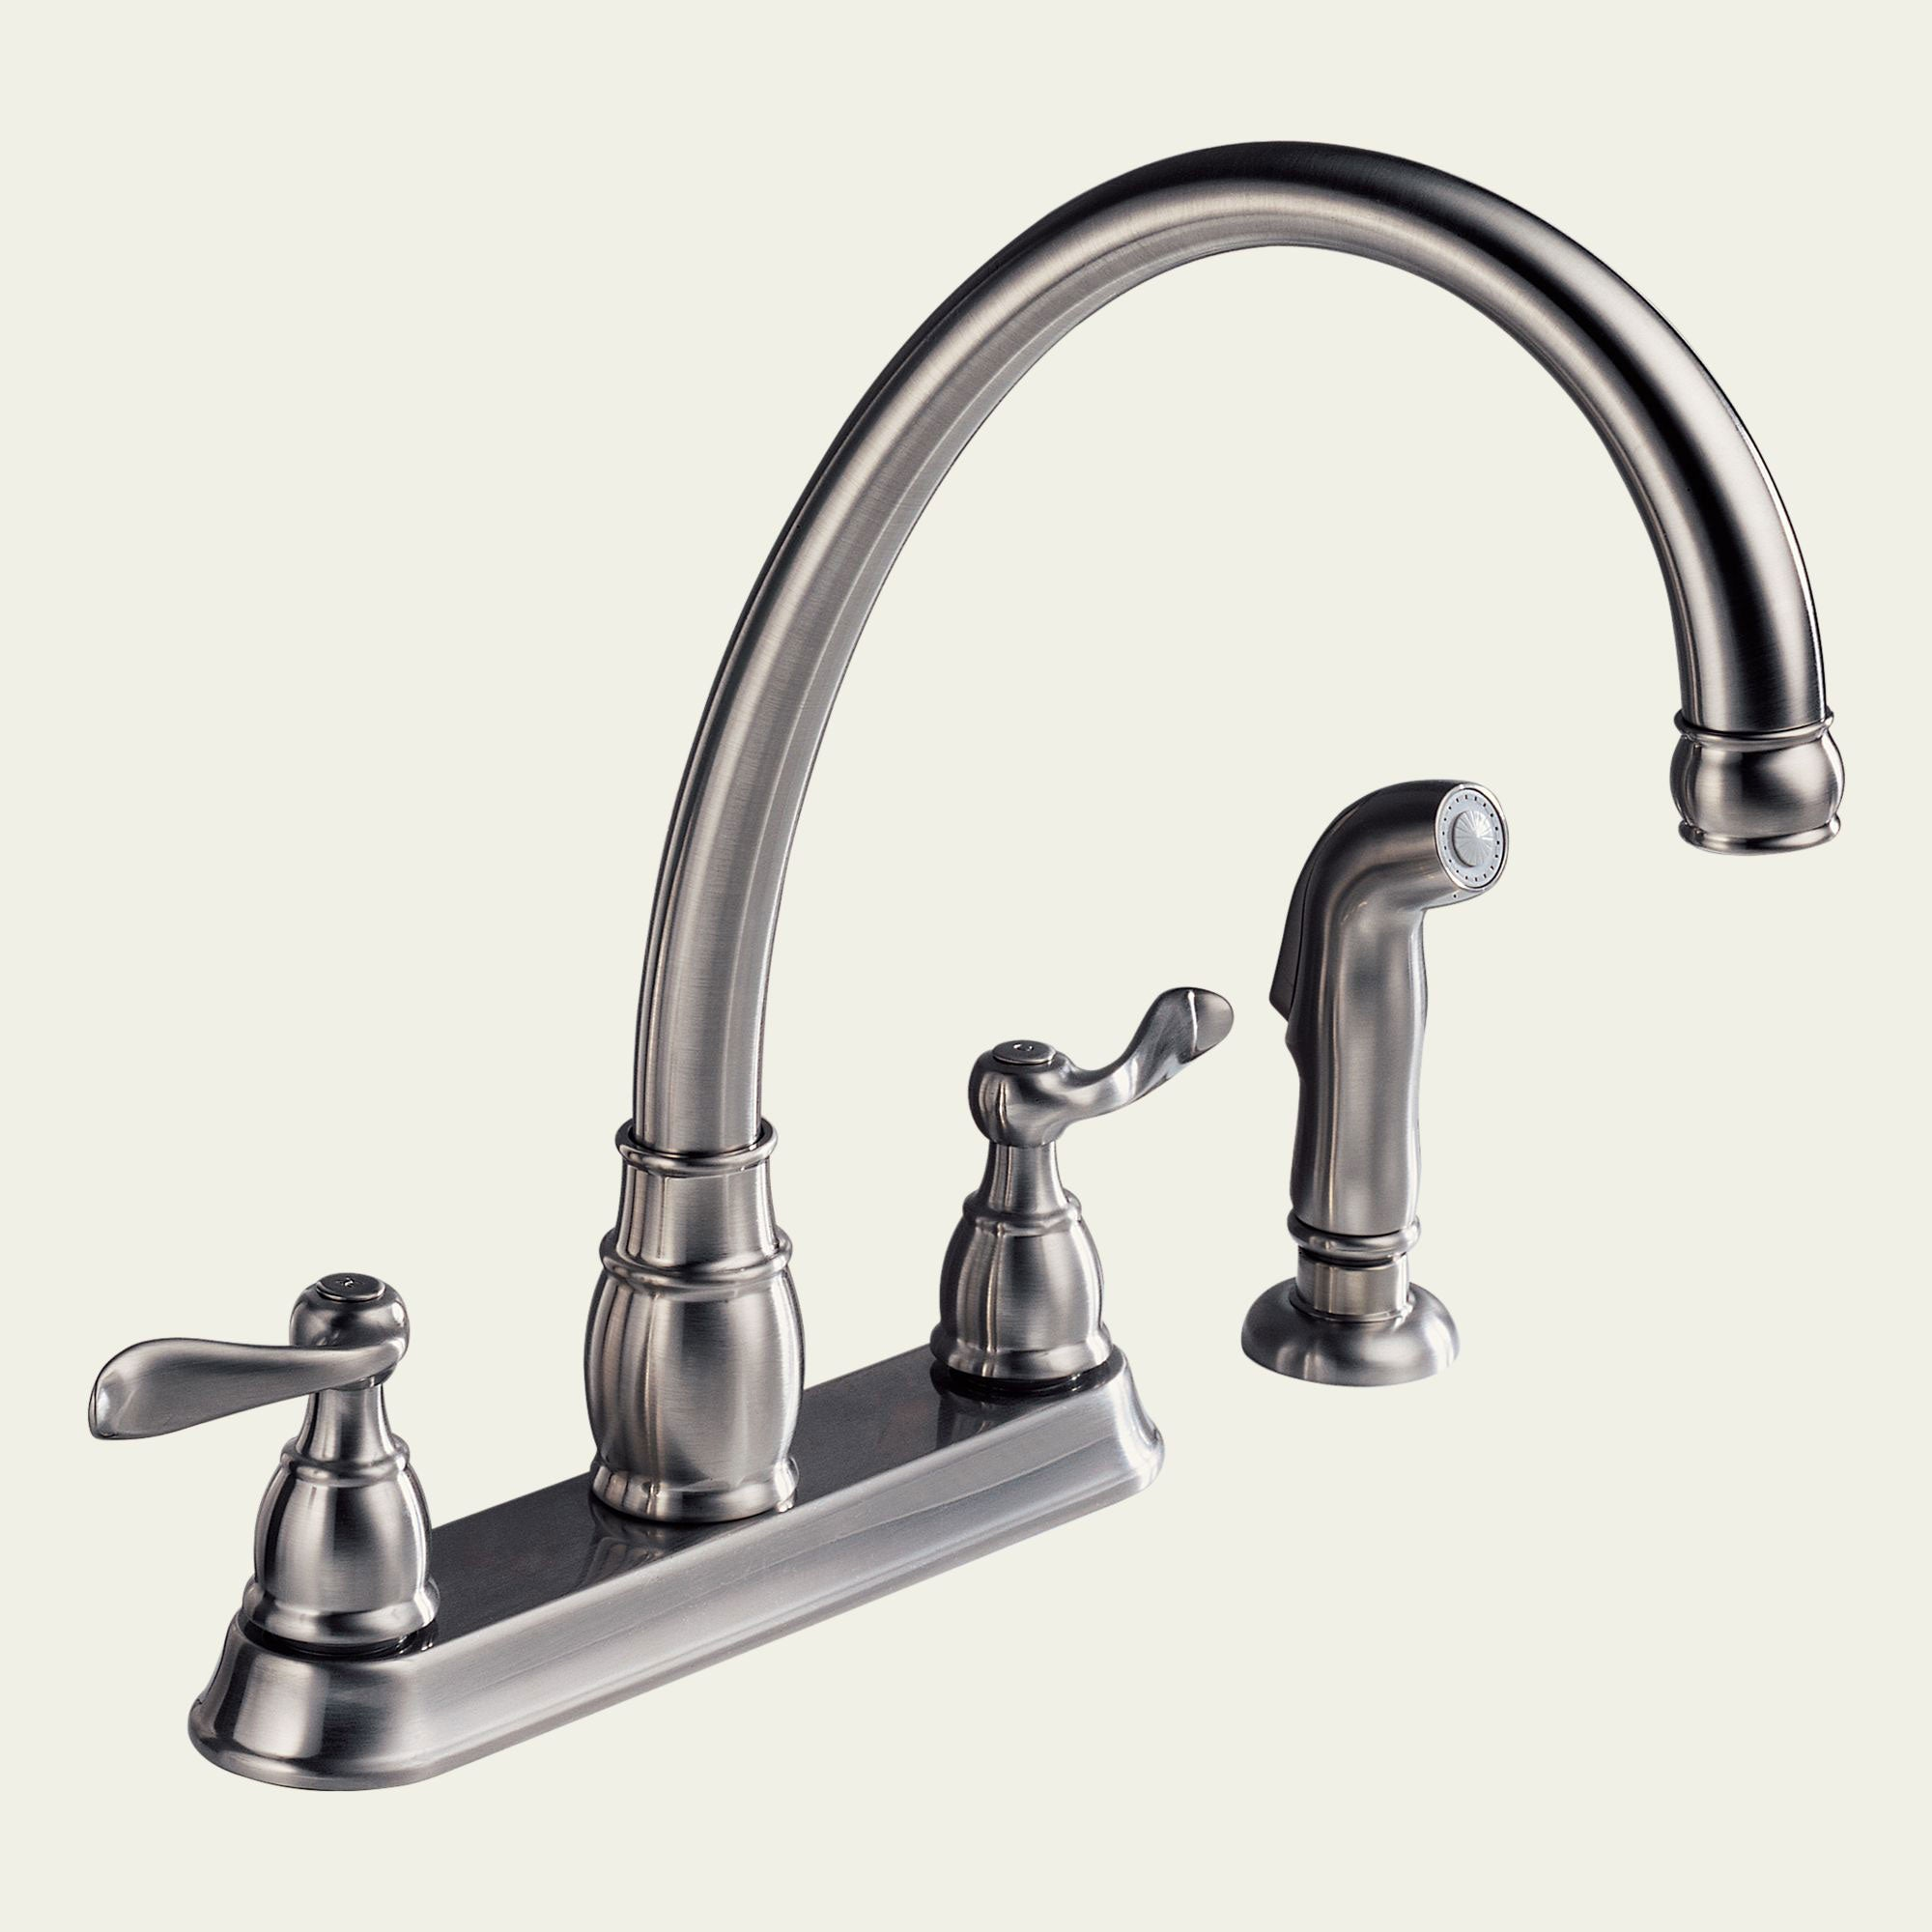 peerless lead free 2 handle chrome kitchen faucet and side